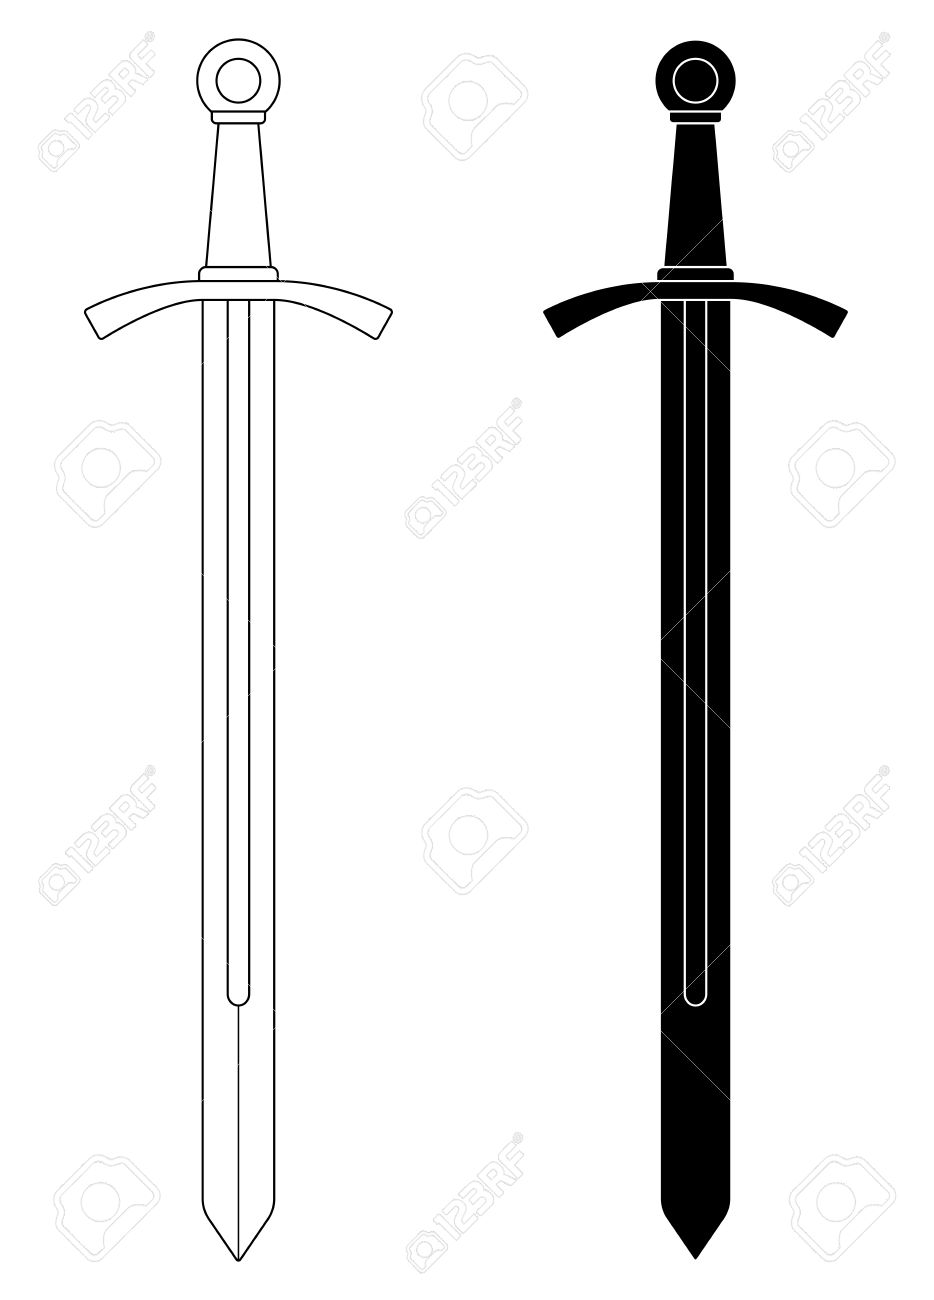 one handed medieval knight vector sword clip art illustration rh 123rf com sword vector art sword vector file